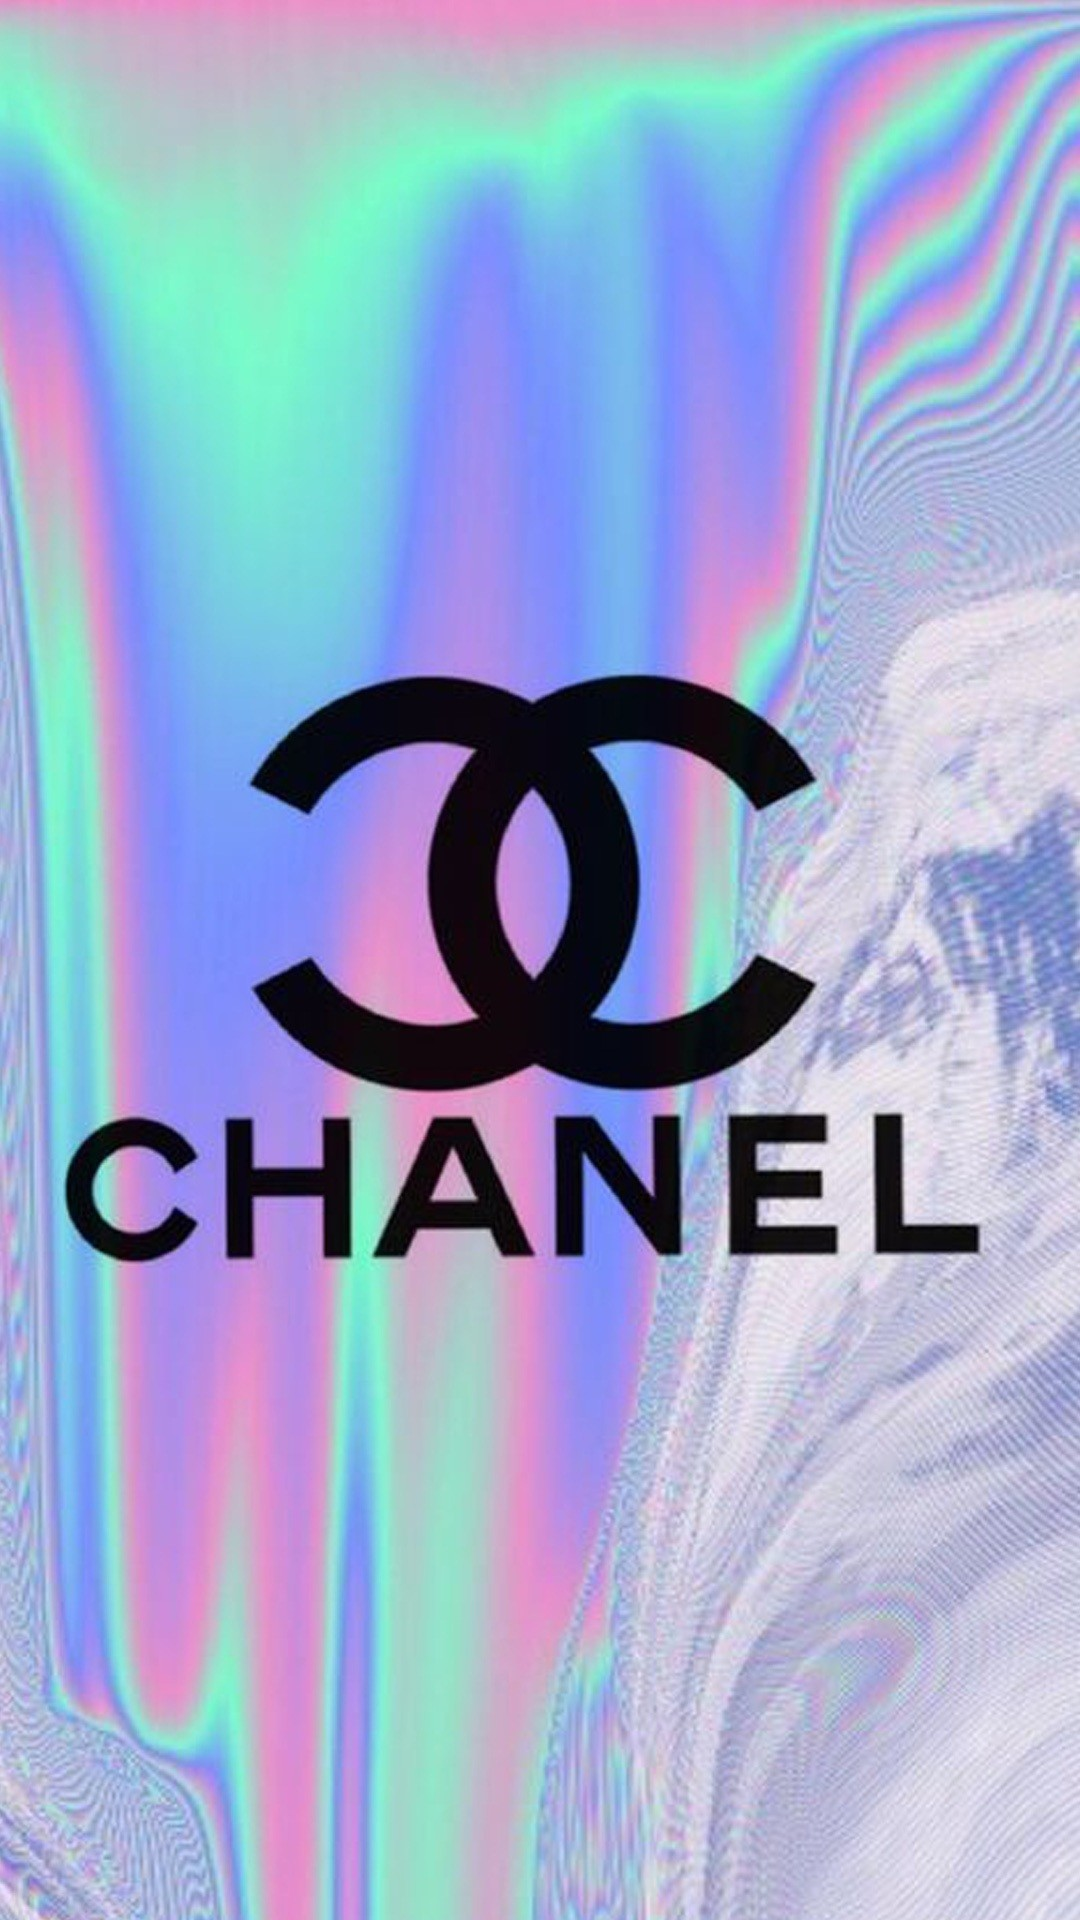 Girly Chanel Iphone Wallpaper Wallpapers For Iphone   Background Wallpapers